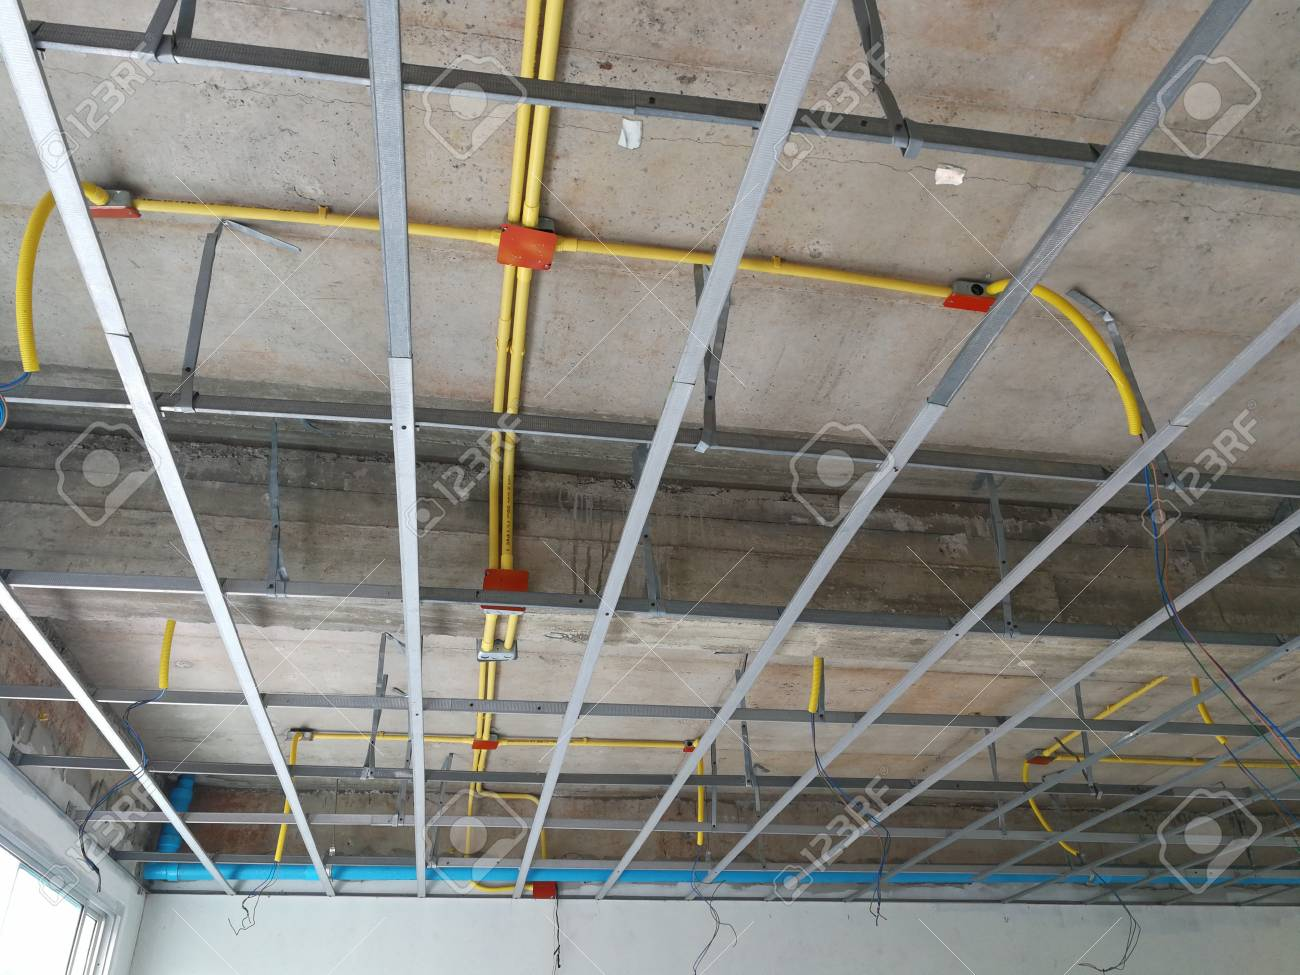 Ceiling Under Construction And Home Wiring Duct Stock Photo, Picture ...